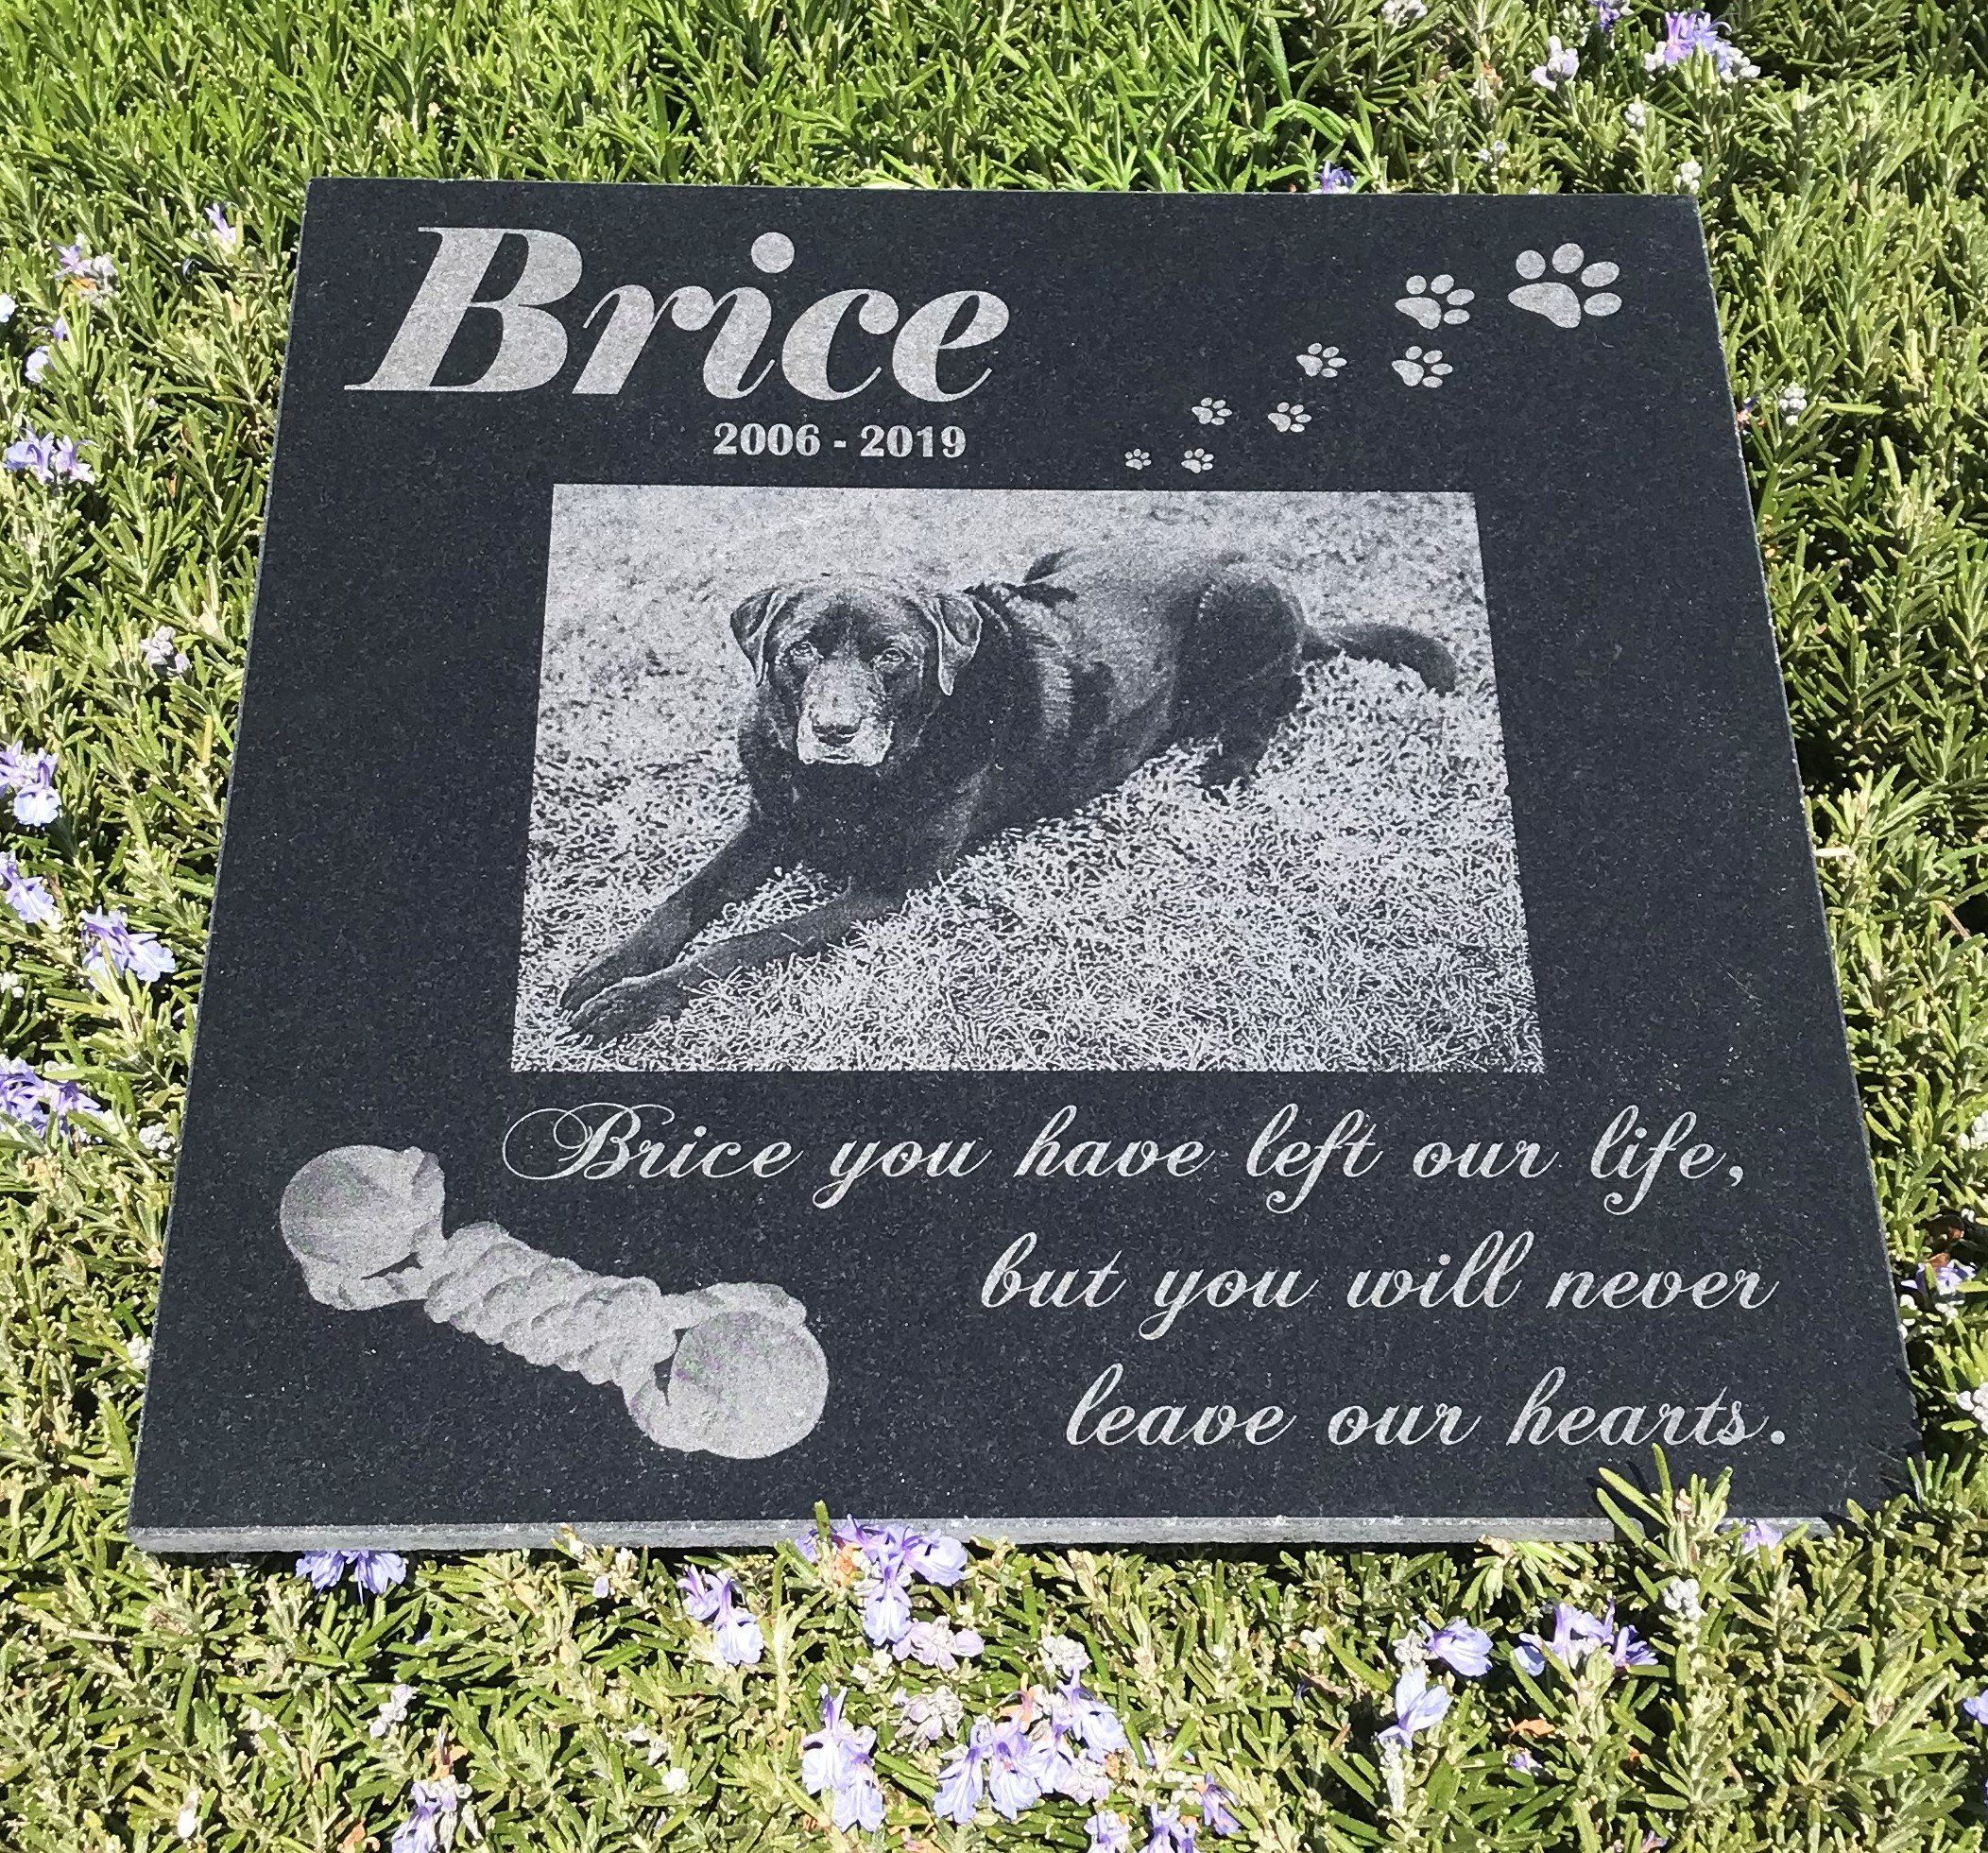 Custom Design 12x12 Engraved Granite Pet Memorial Garden Etsy Granite Pet Memorials Pet Memorial Garden Memorial Garden Stones